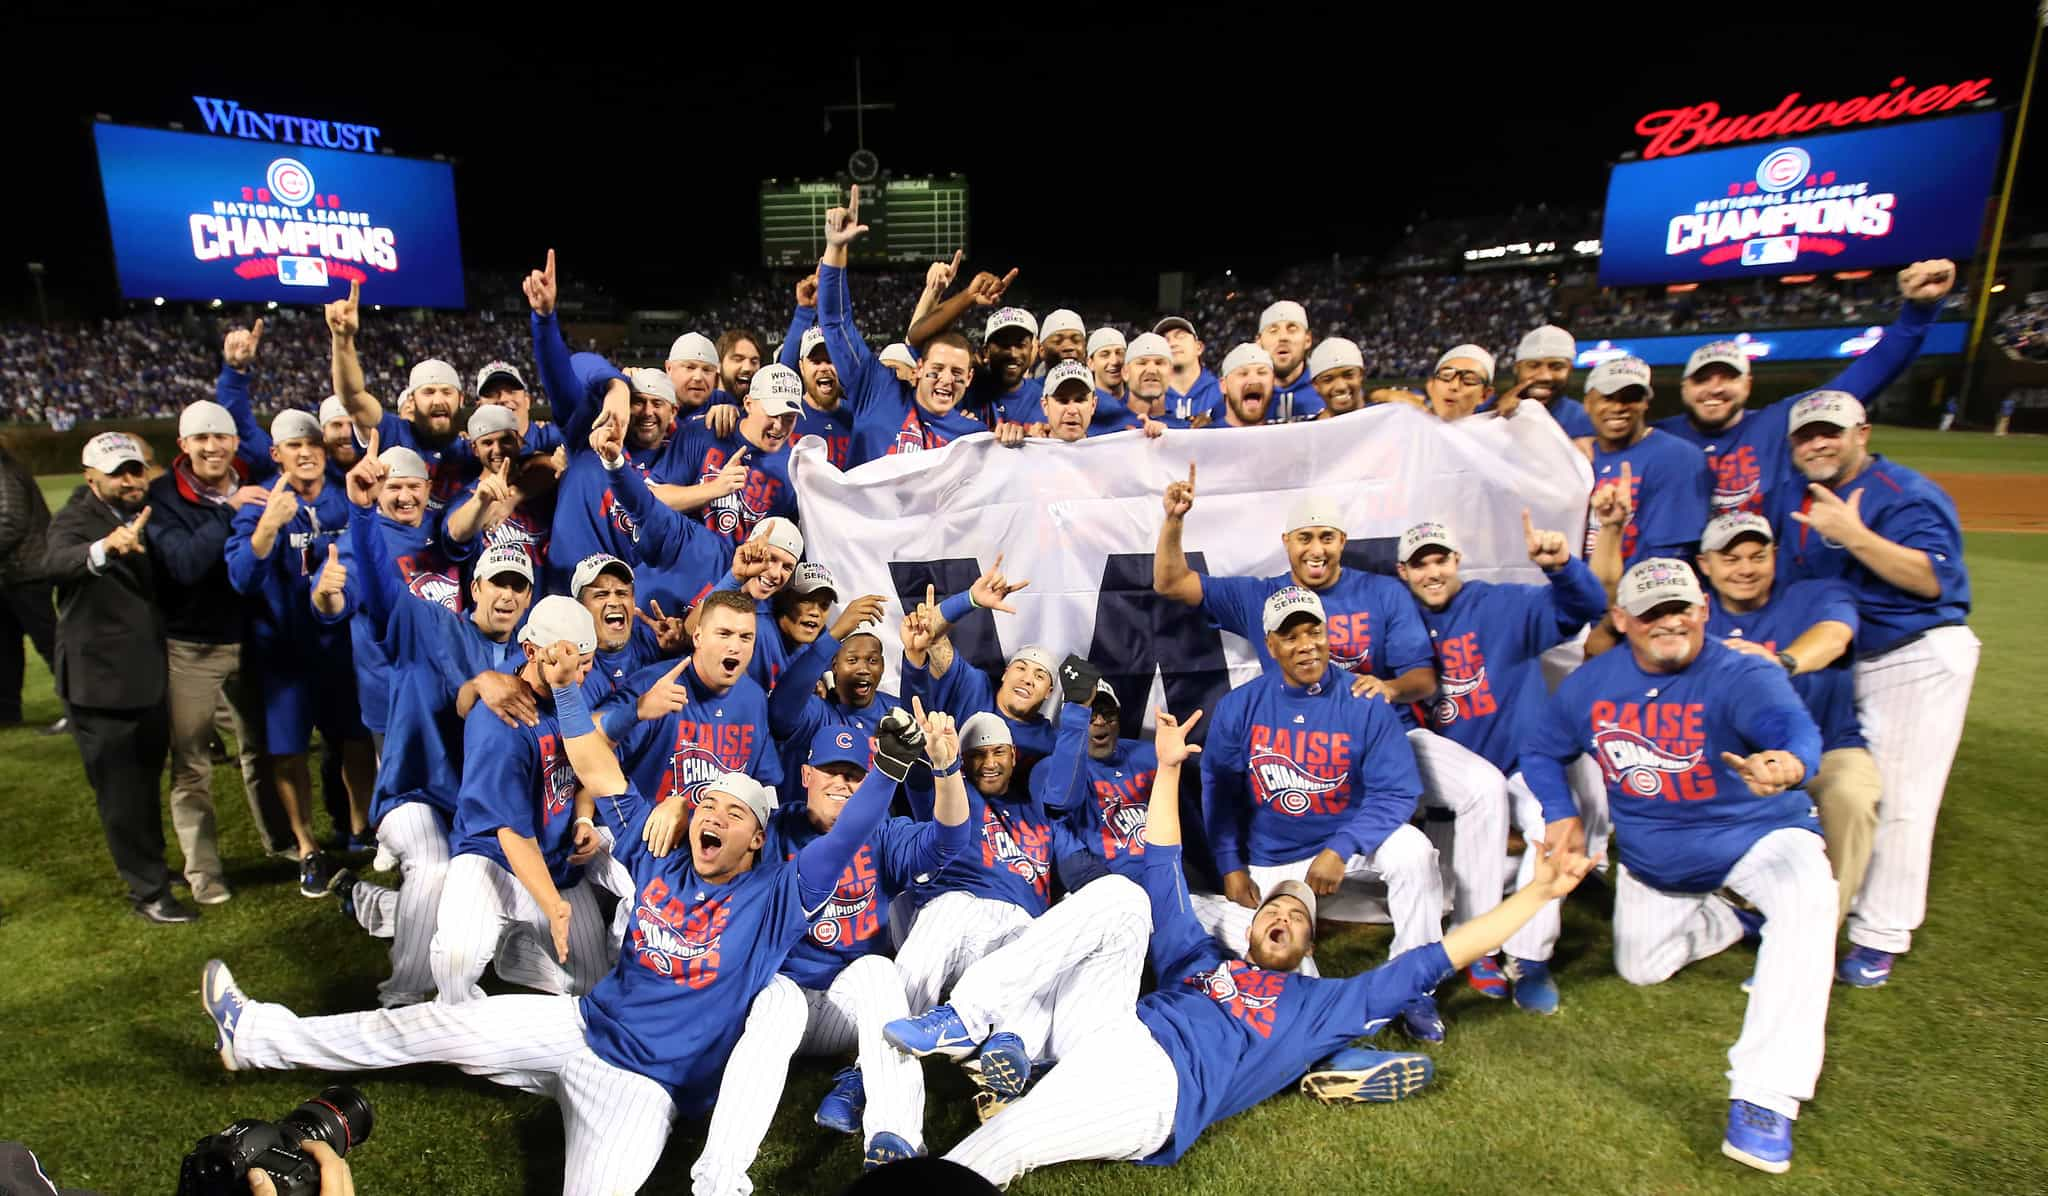 employee development plans are key to the cubs winning